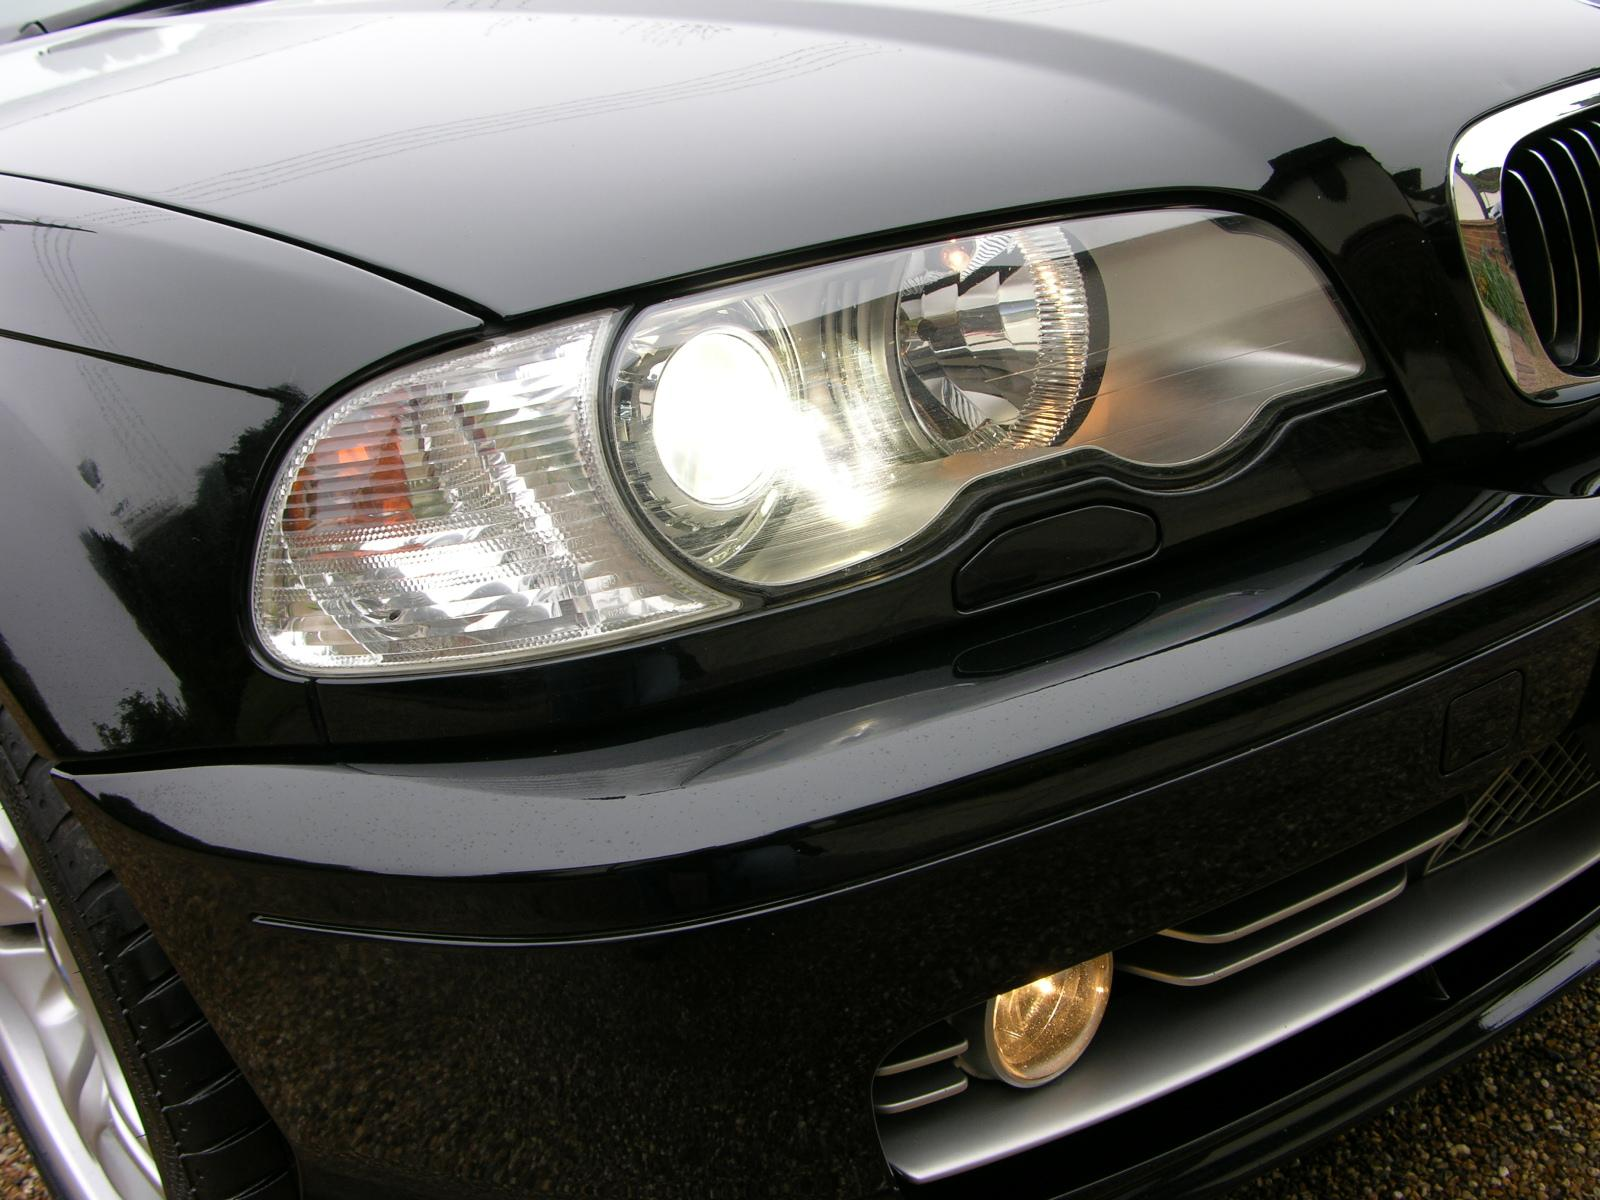 hight resolution of does everyone get xenon burn marks on their lenses archive bmw m3 forum com e30 m3 e36 m3 e46 m3 e92 m3 f80 x